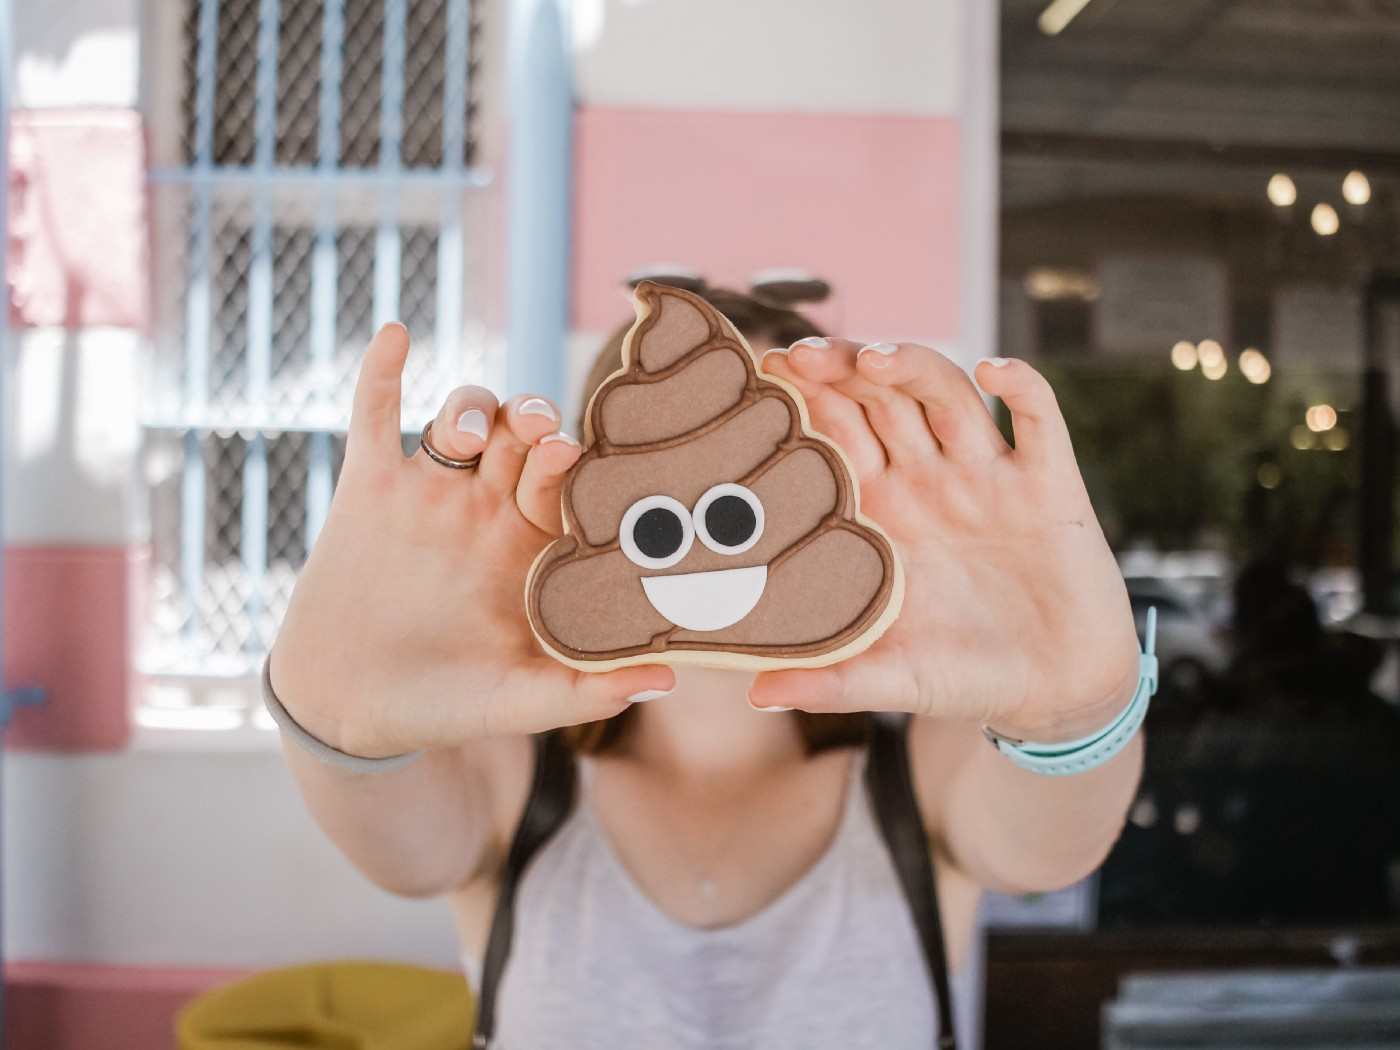 young caucasian girl holding poop emoji cookie  in front of her face with two hands. cookie has googly eyes and smily face.